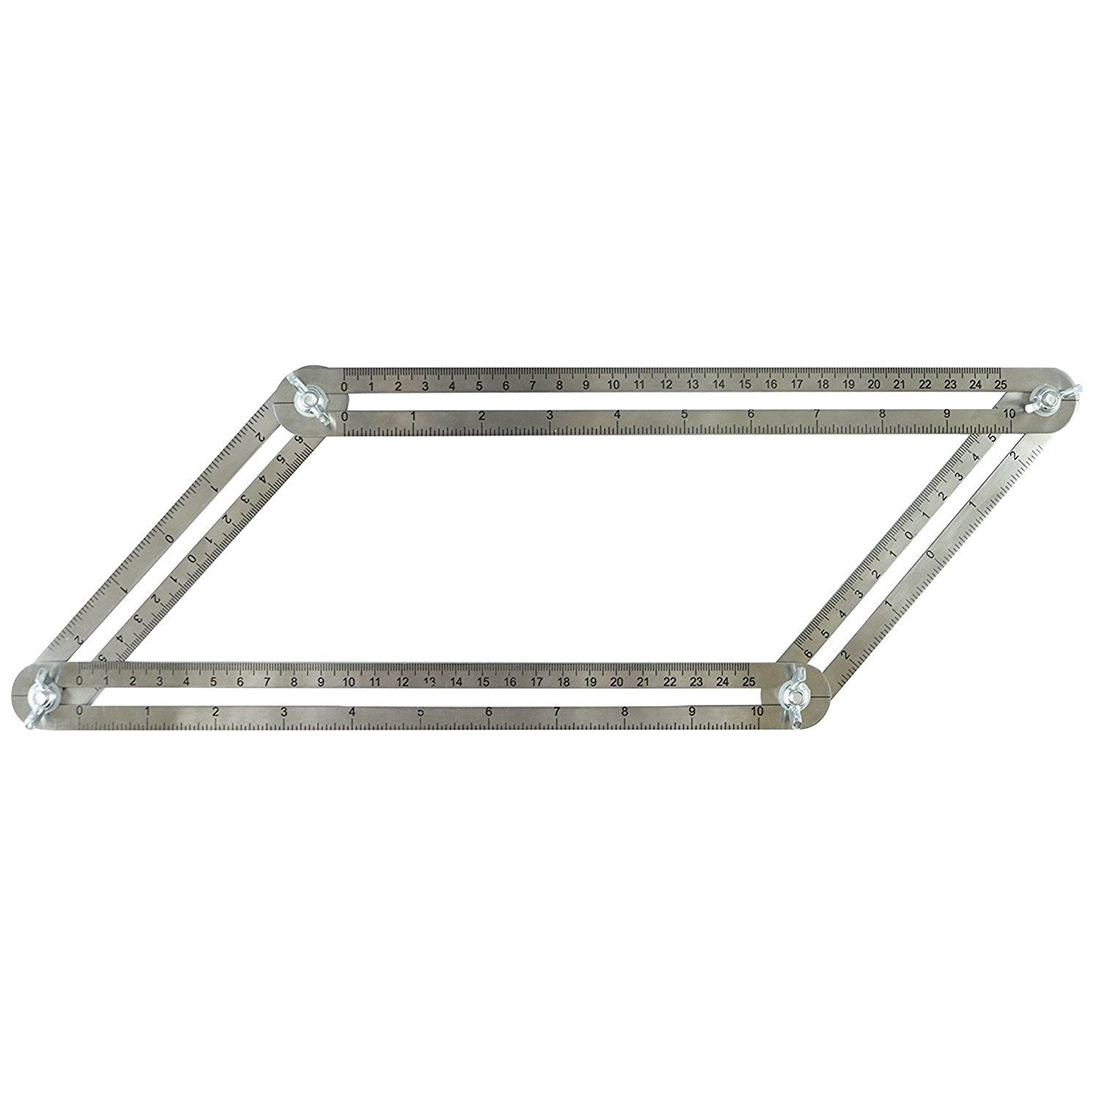 Stainless Steel Multi Angle Ruler Template Tool Box Easy Measuring Four Sided Ruler